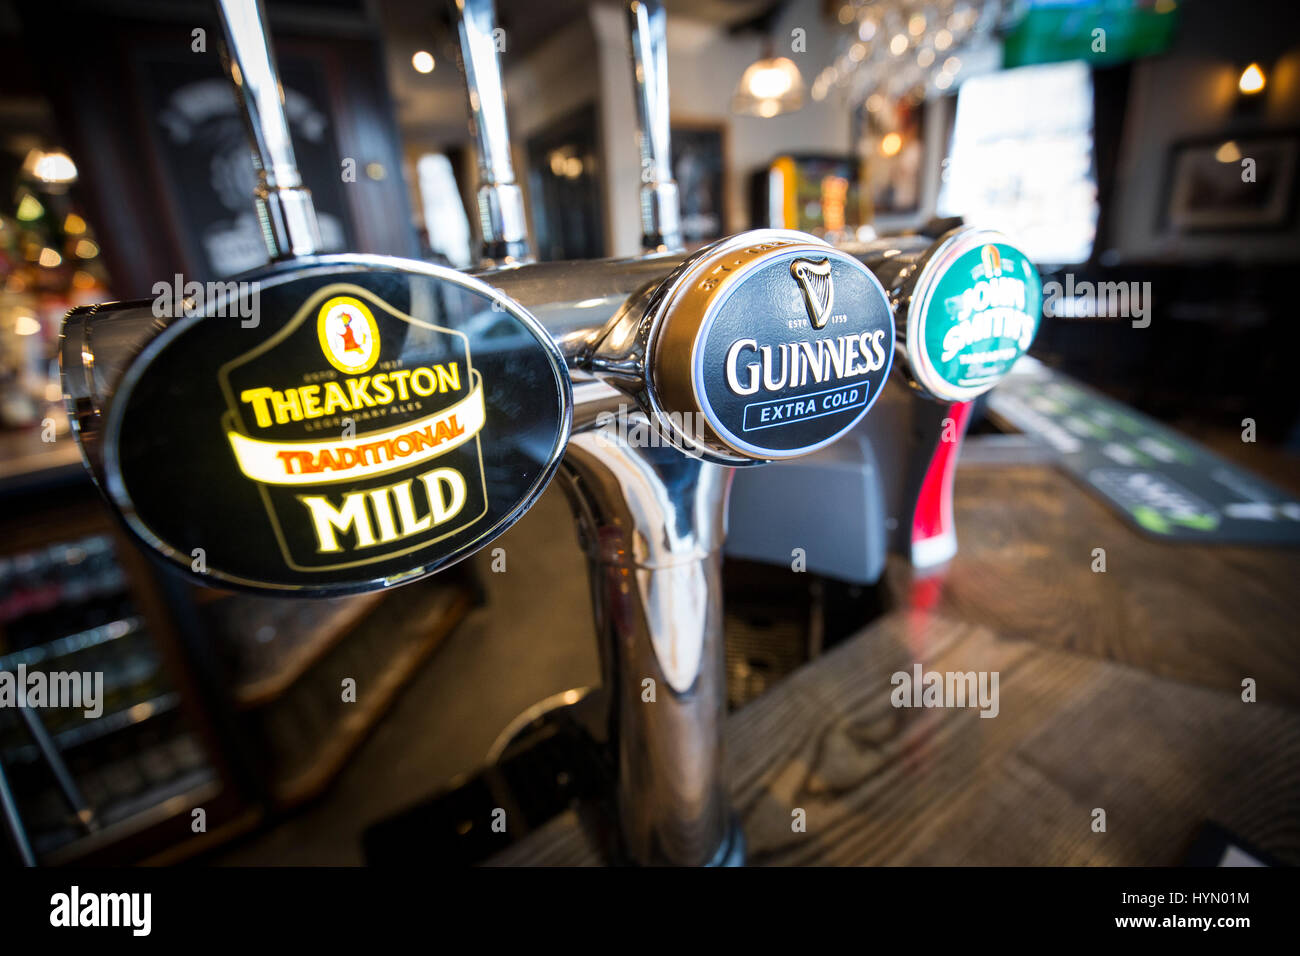 Drink taps in an English pub - Stock Image